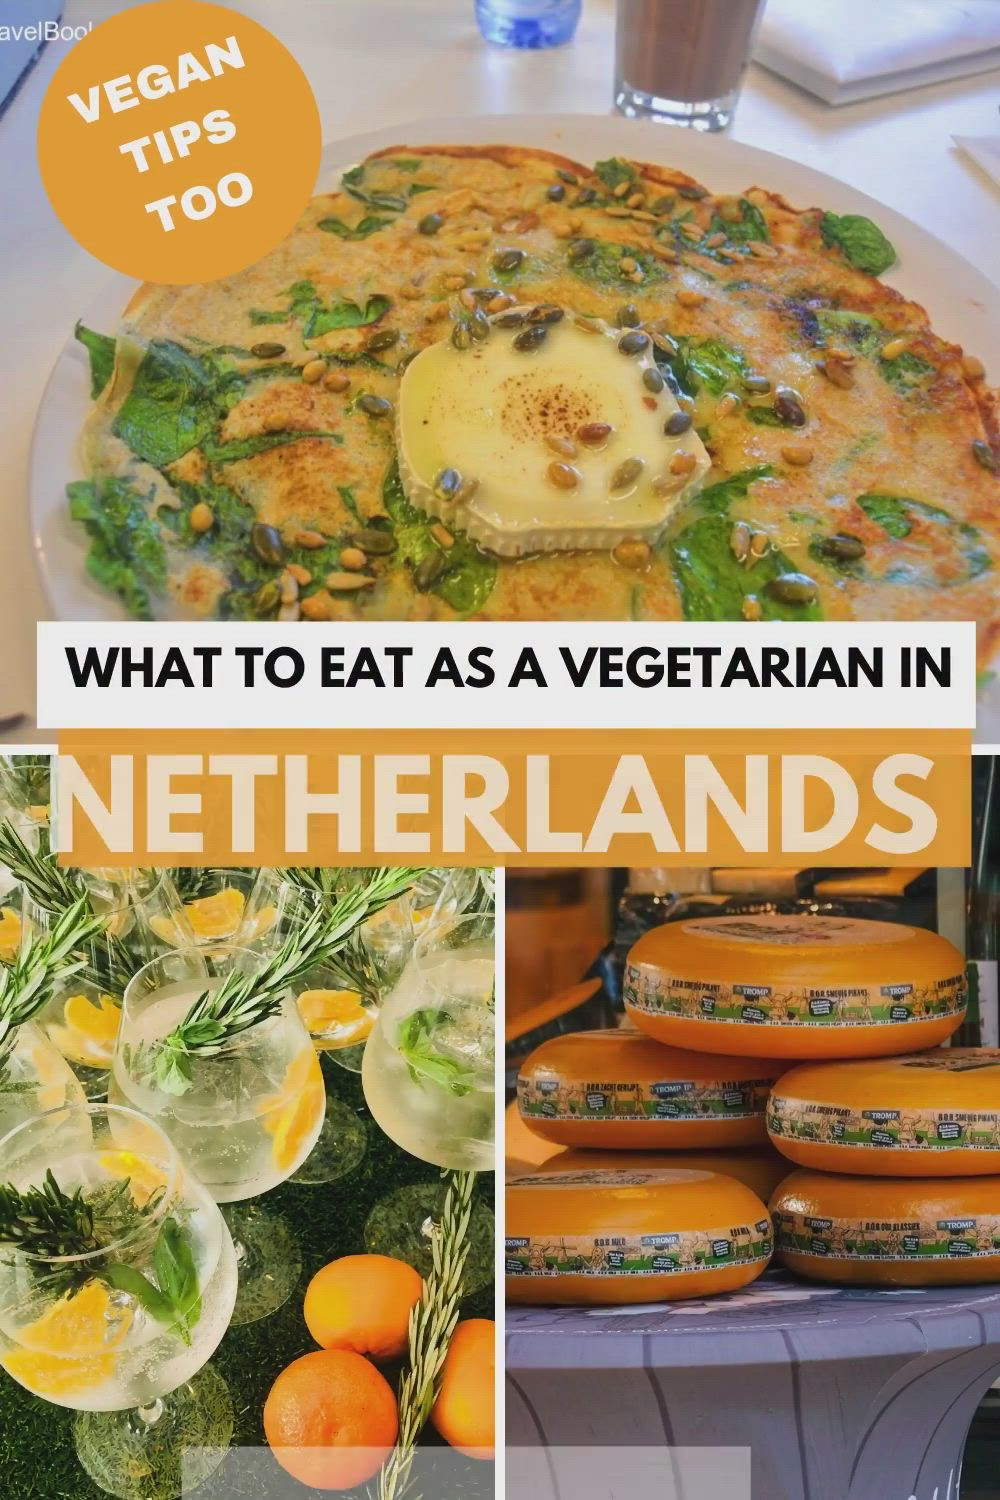 Vegetarian Food In Amsterdam And Luxembourg Travel Books And Food Video Video In 2020 Vegetarian Travel Food Vegetarian Recipes Food Guide